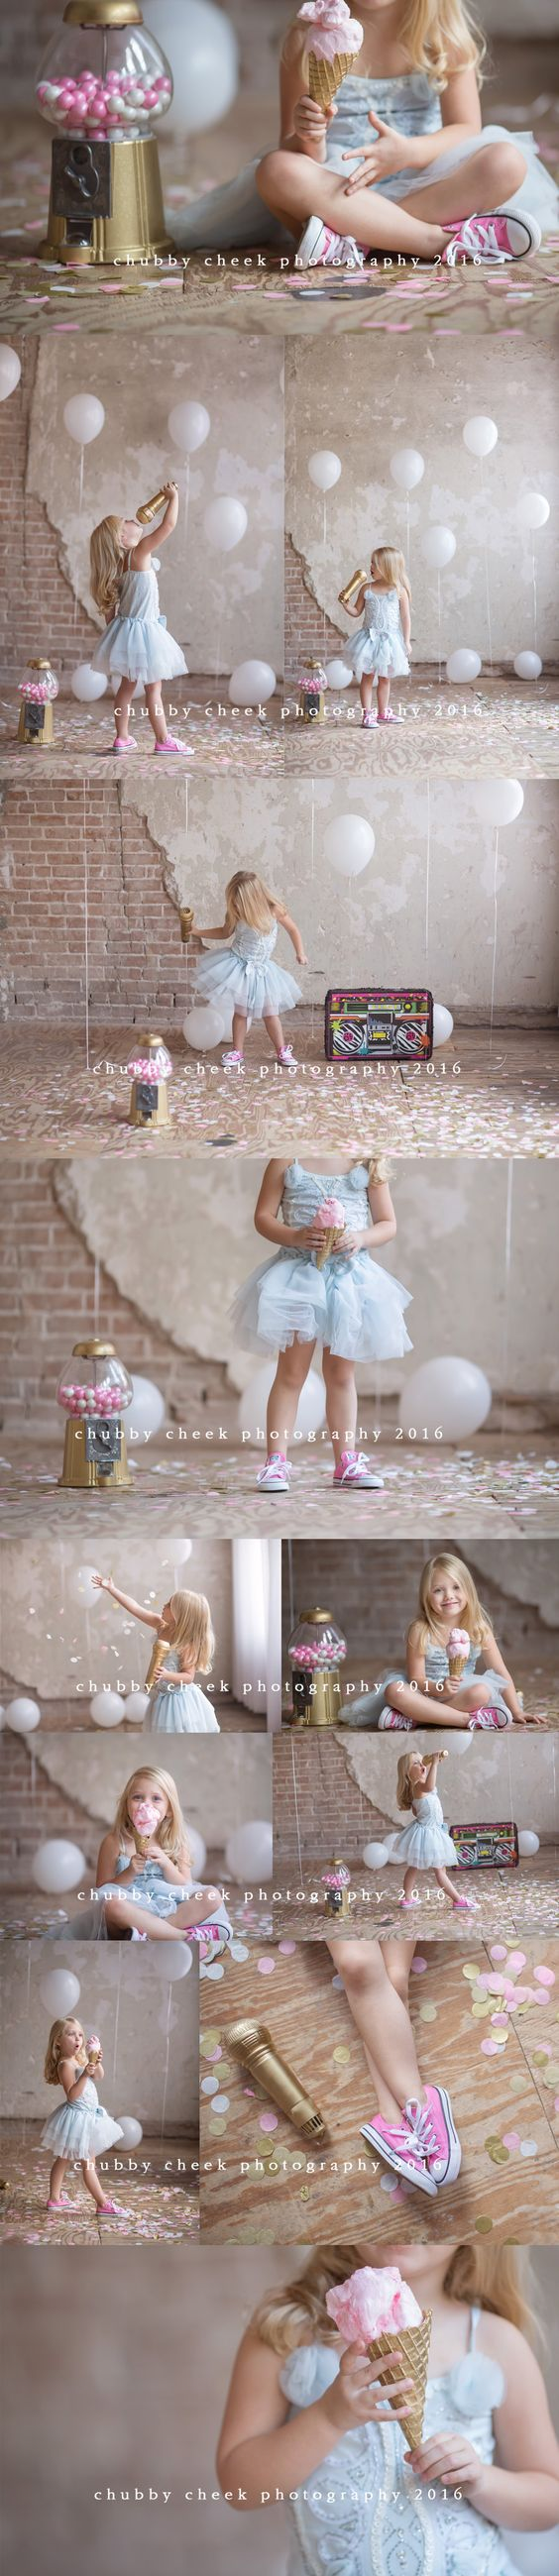 Pretty photos of a little girl with fun props: tutu, ice cream and bubblegum